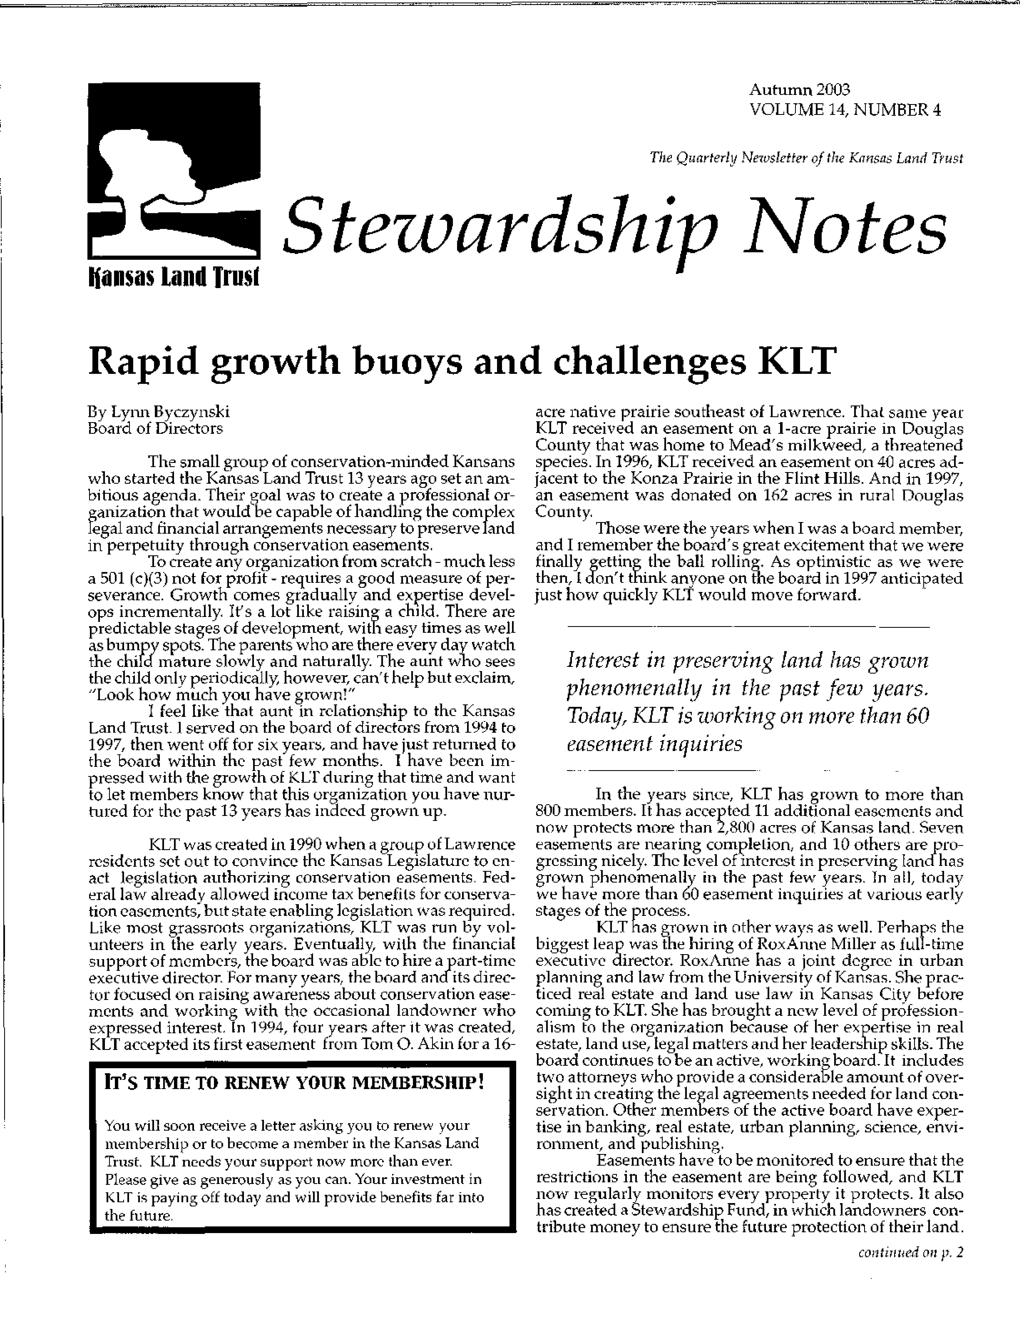 Autumn 2003 VOLUME 14, NUMBER 4 The Quarterly Newsletter of the Kansas Land Trust Hansas land Trust Stezvardship}Votes Rapid growth buoys and challenges KLT By Lynn Byczynski Board of Directors The